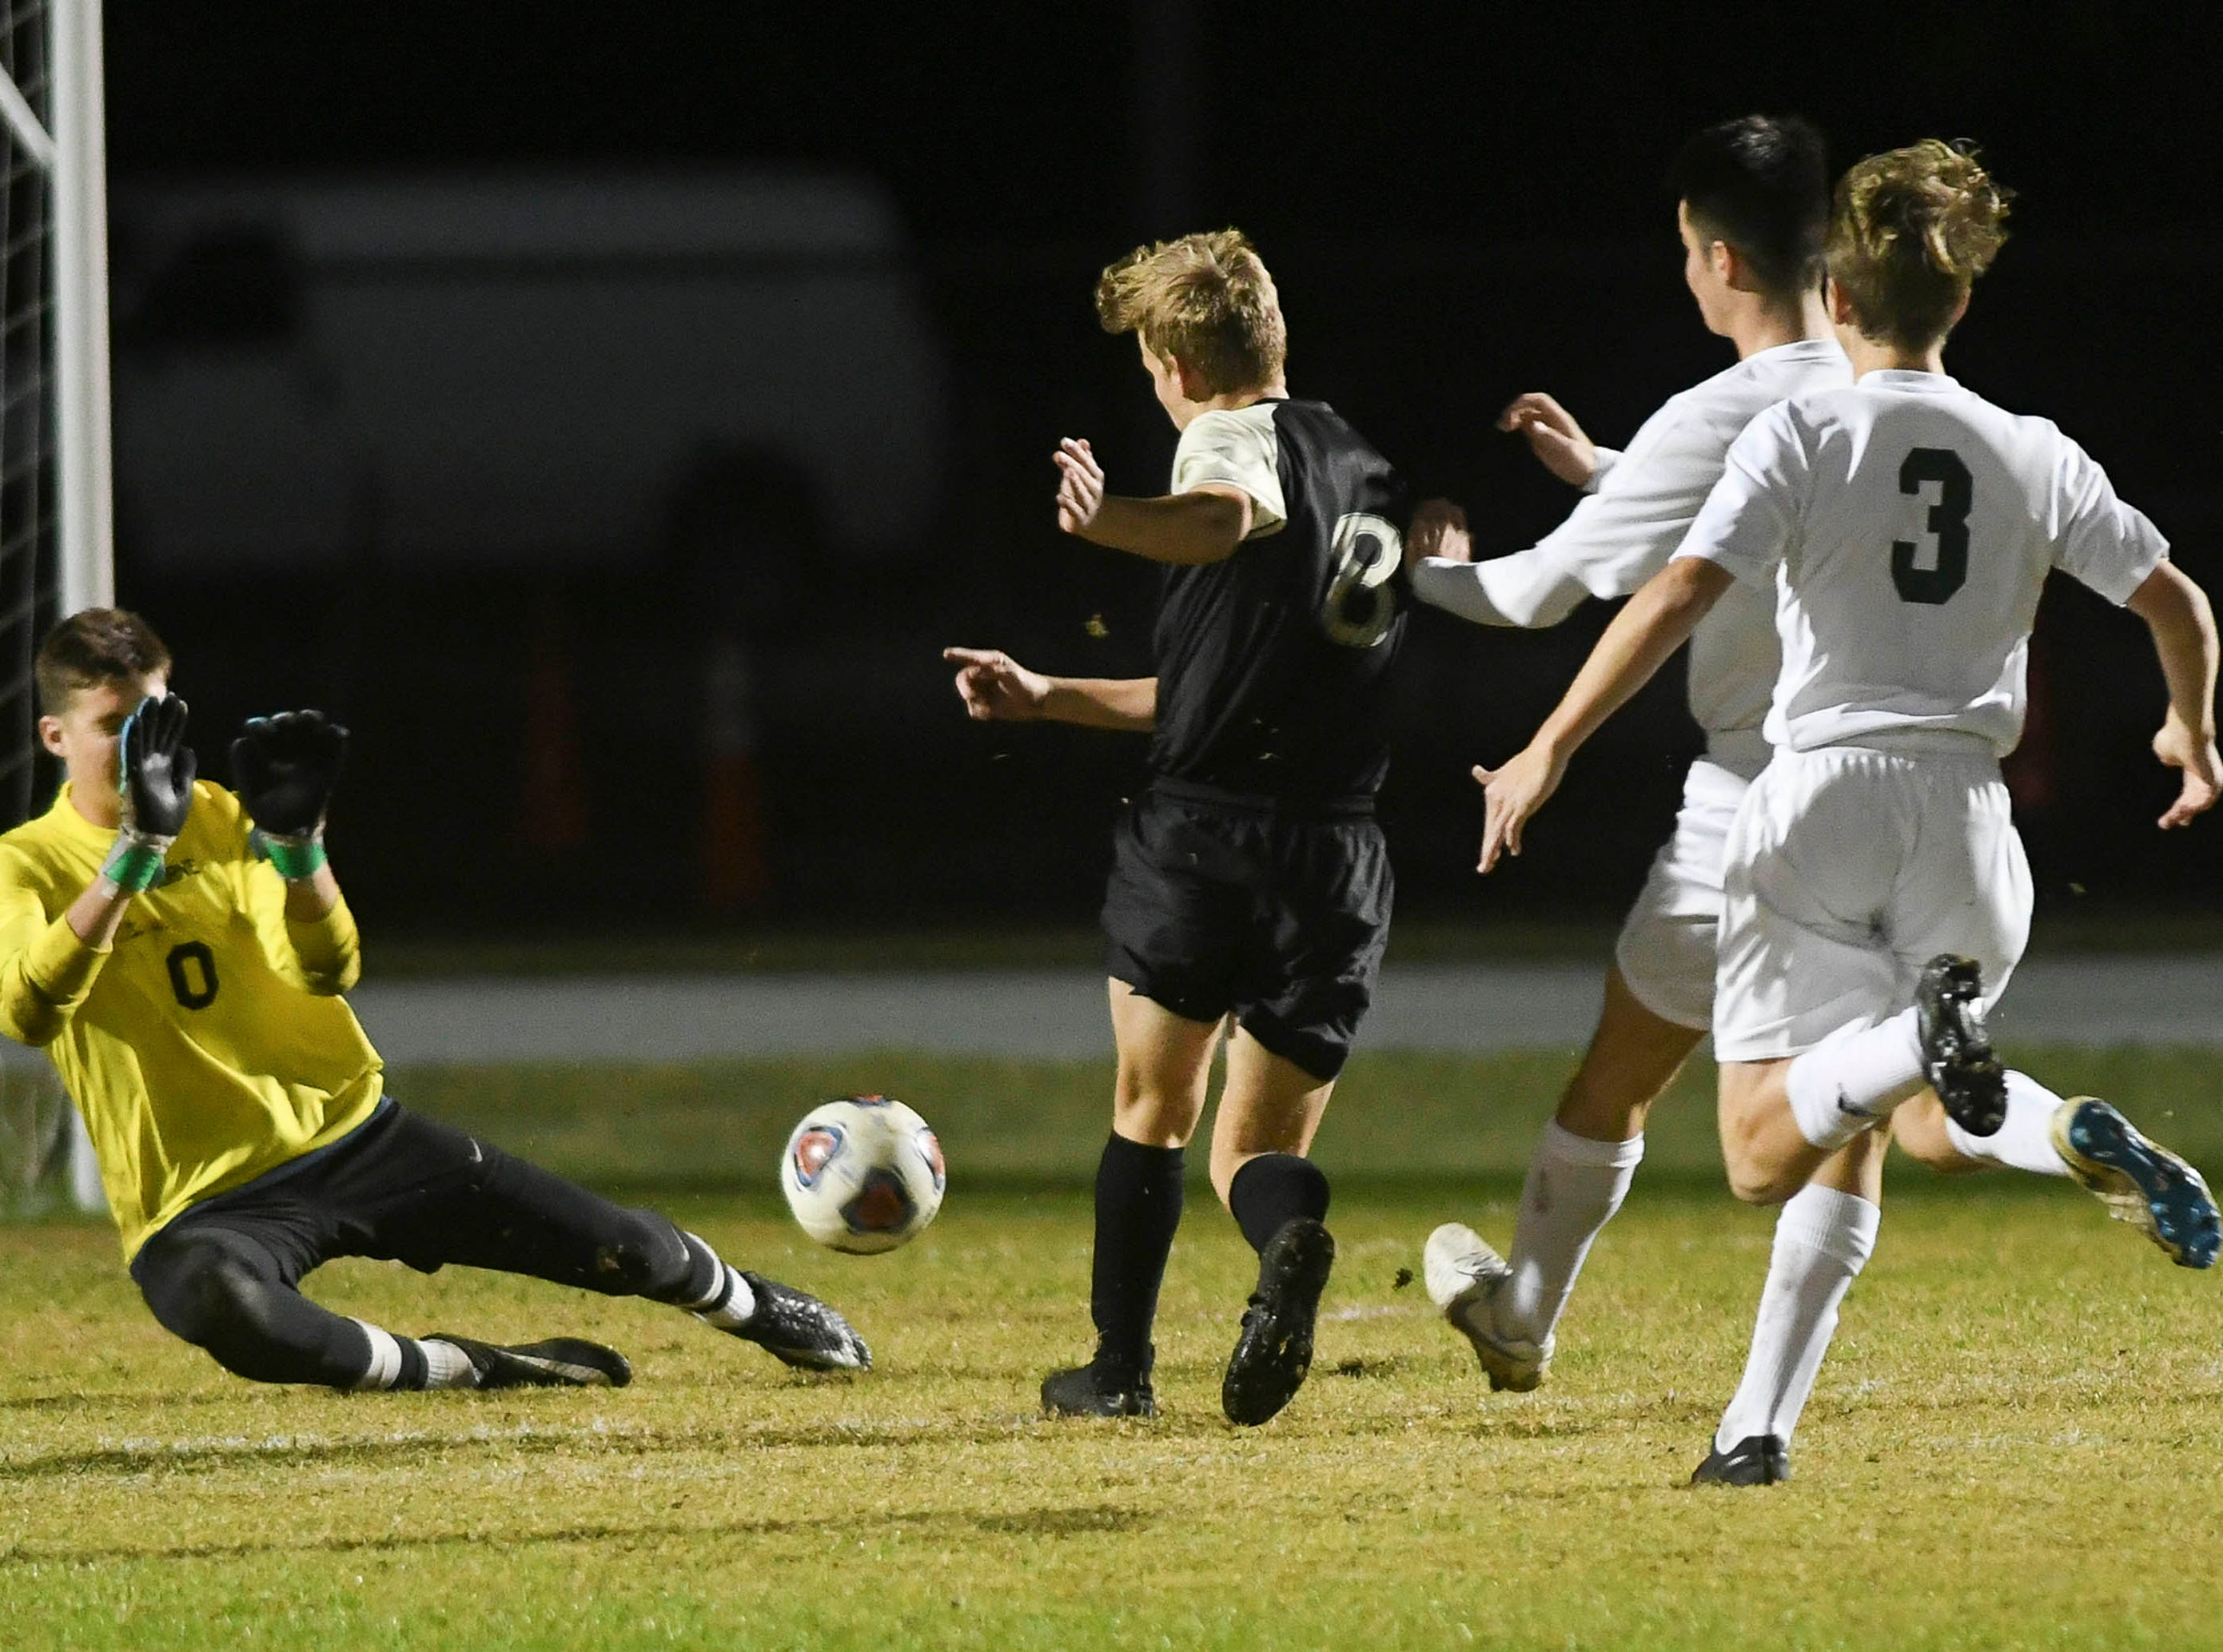 Melbourne goalkeeper Zach Browne makes a save during Friday's district championship game at Viera High.